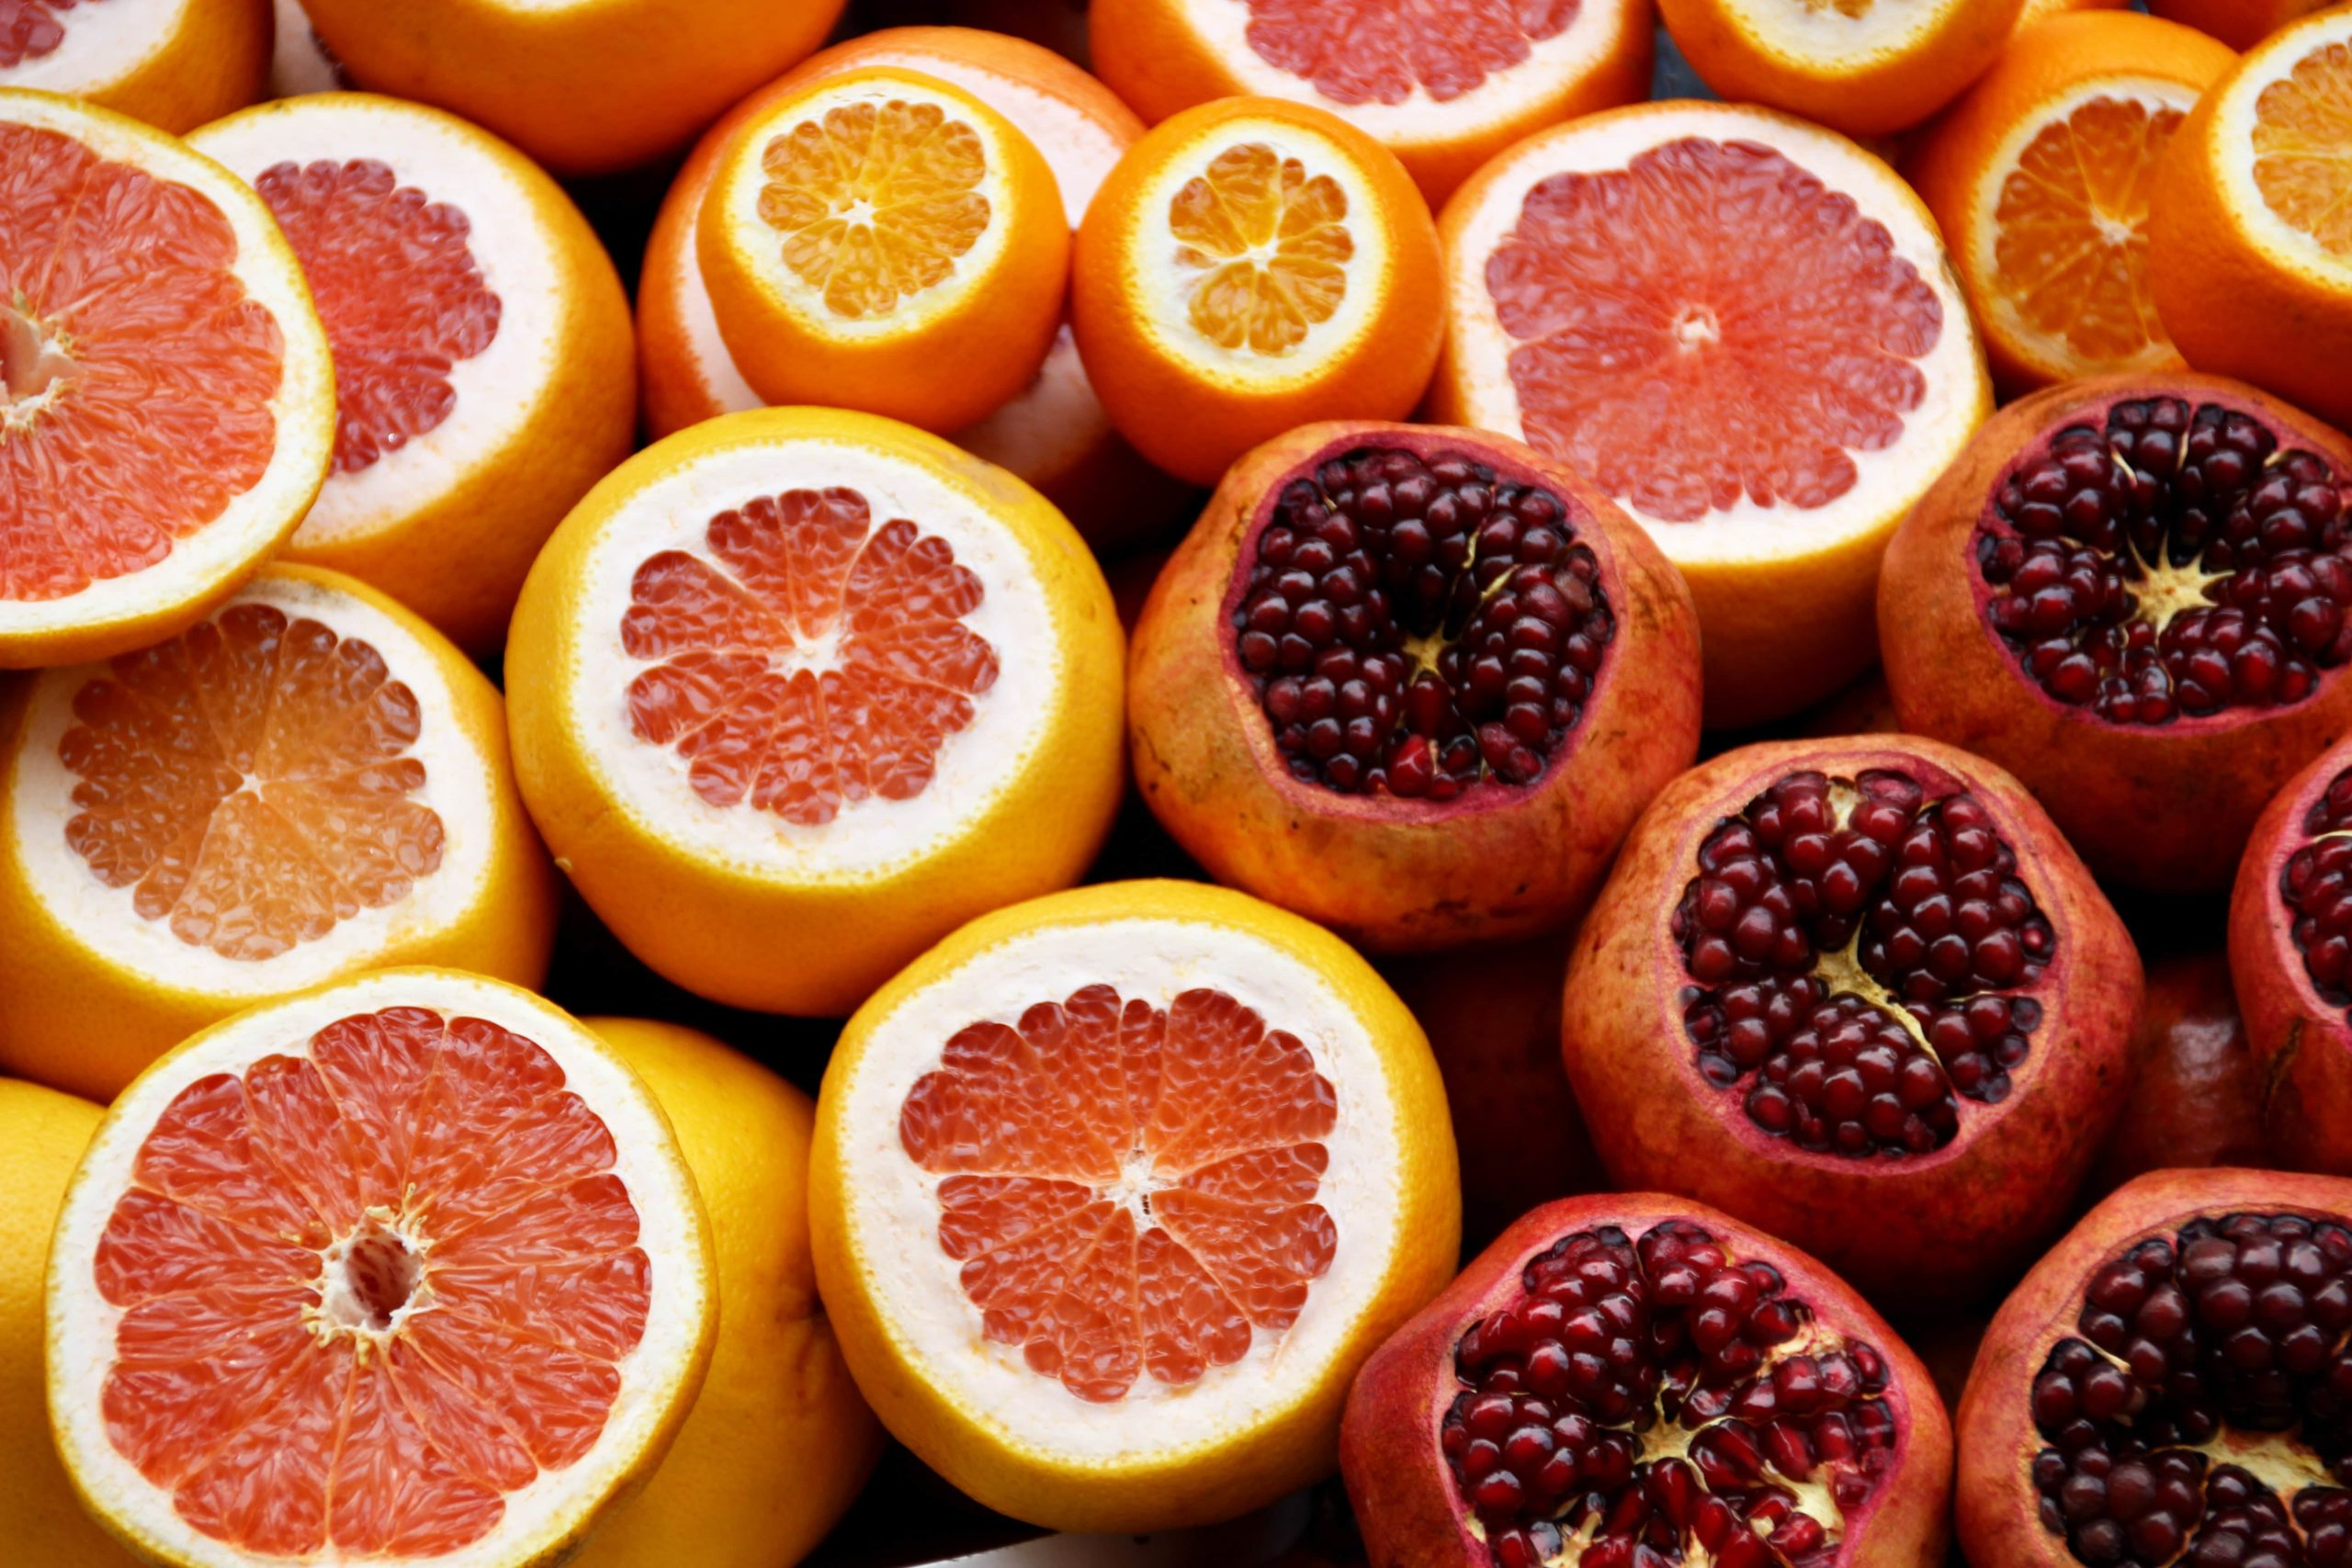 Citrus fruits are a source of vitamin C